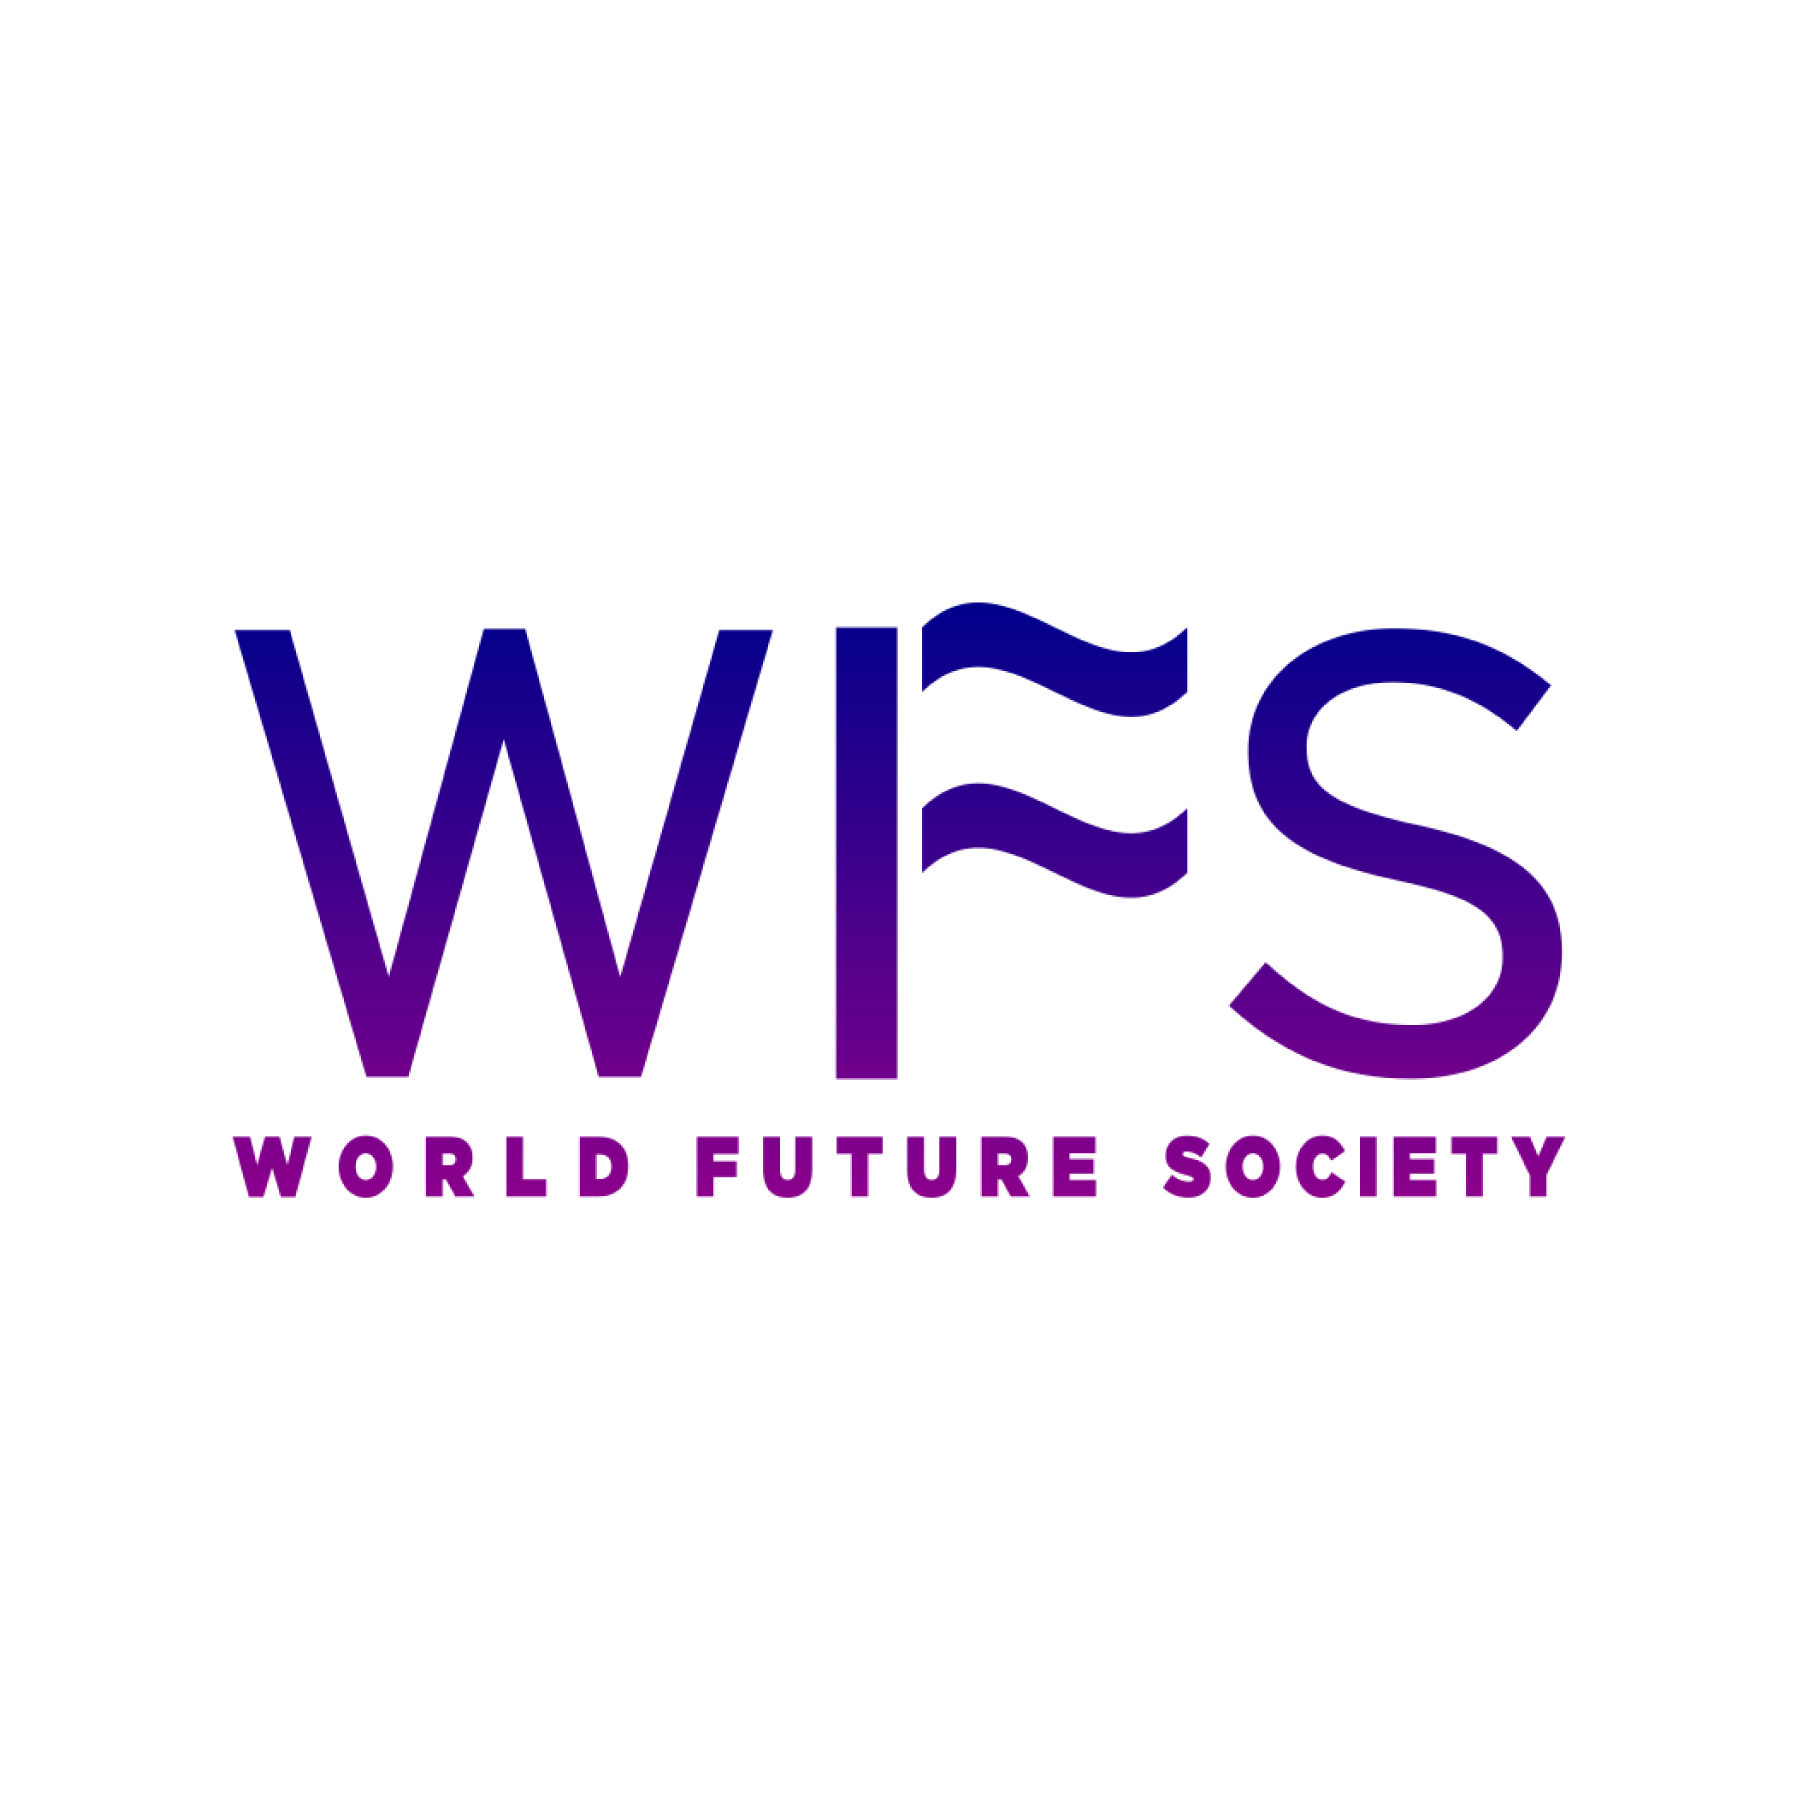 World Future Society